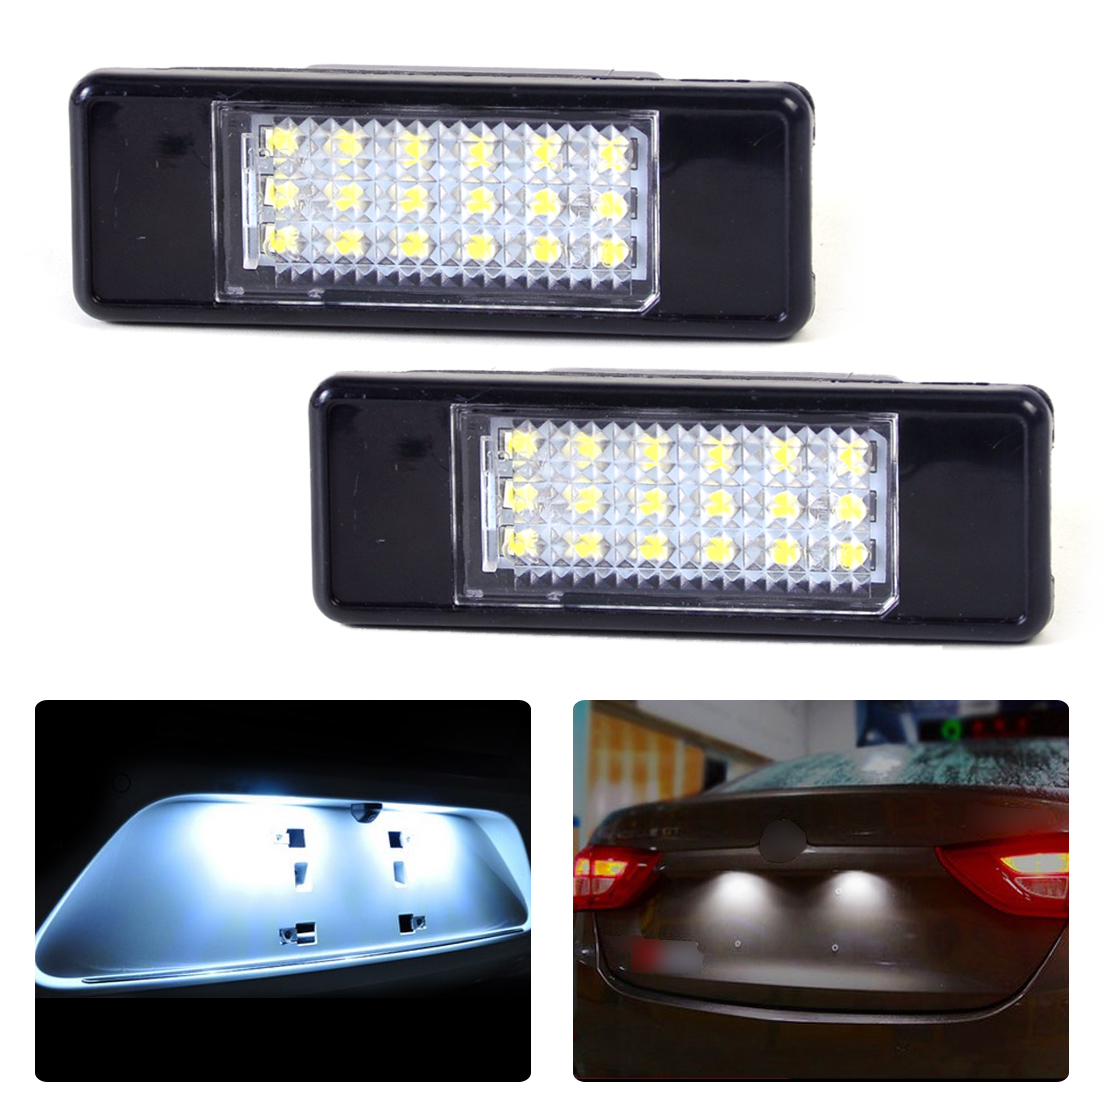 2pc New 6000K Rear License Plate Light White 18 LED Lamp 6340 G9 6340 A5 for Peugeot 207 308 406 407 508 Citroen C2 C3 Hatchback smaart v 7 new license